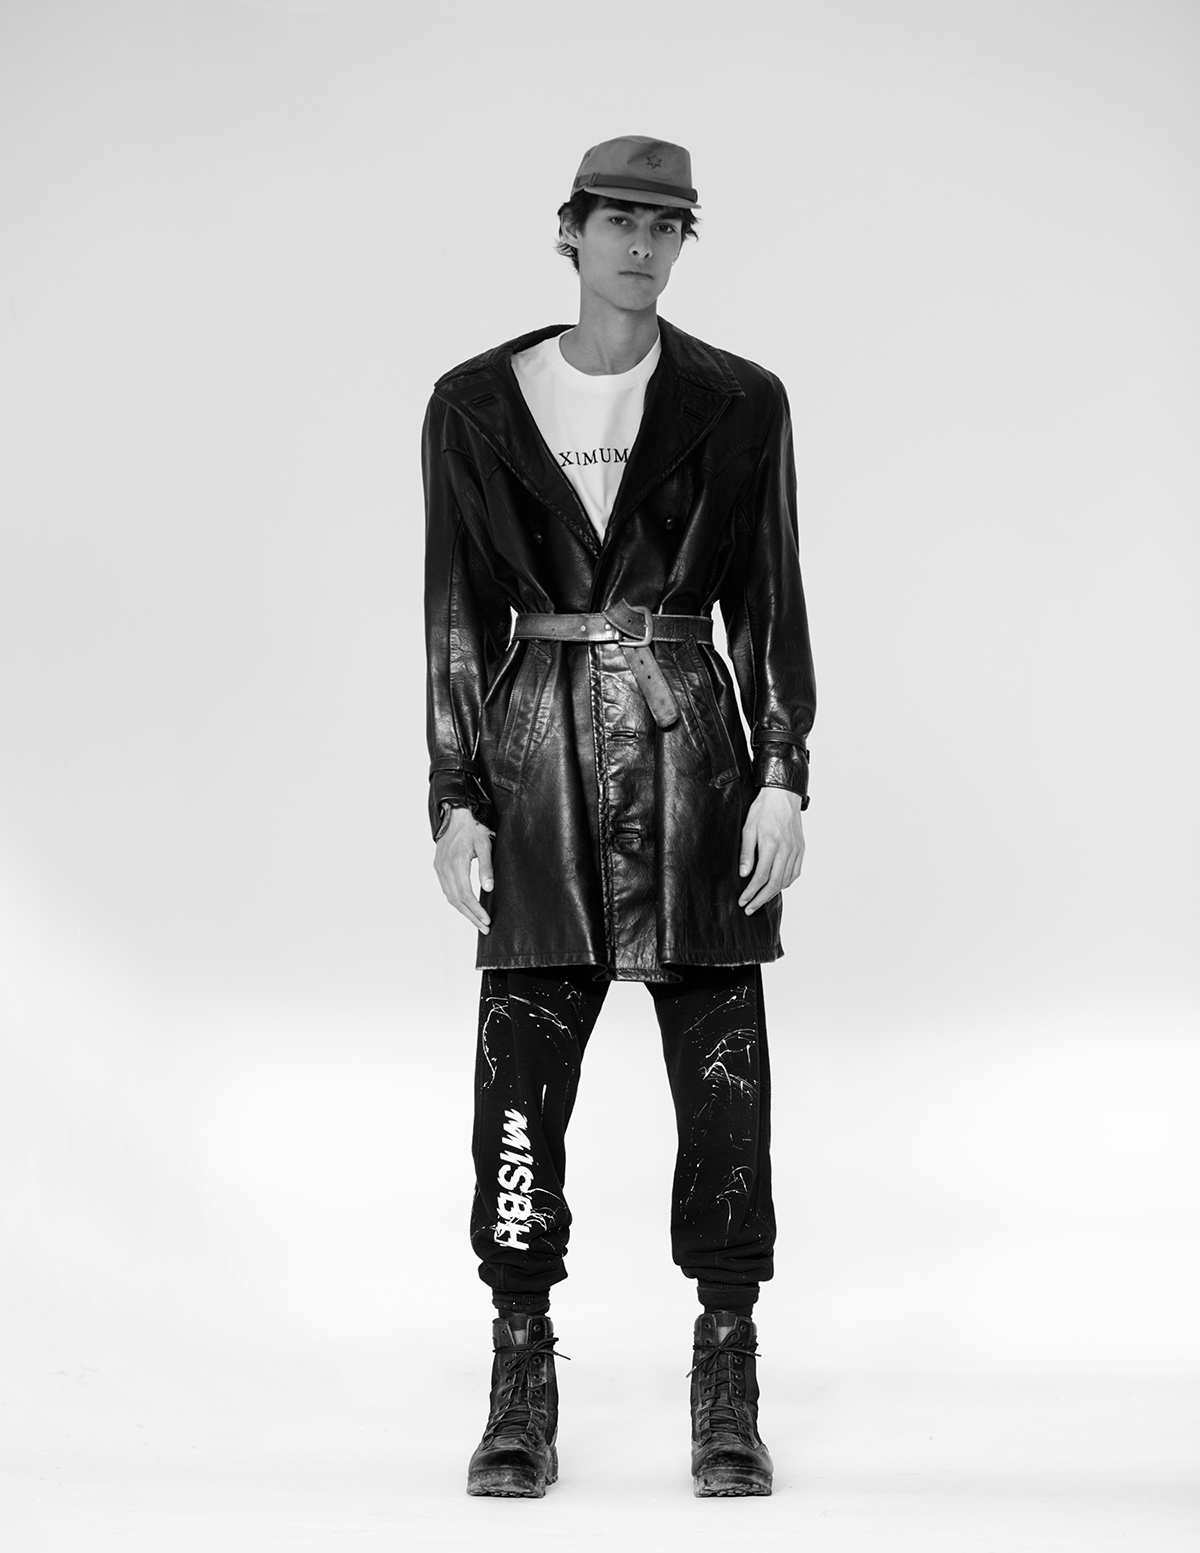 T-shirt Cahartt Wip, vintage hat, leather jacket and military boot stylist's own, sweatpants Misbhv.